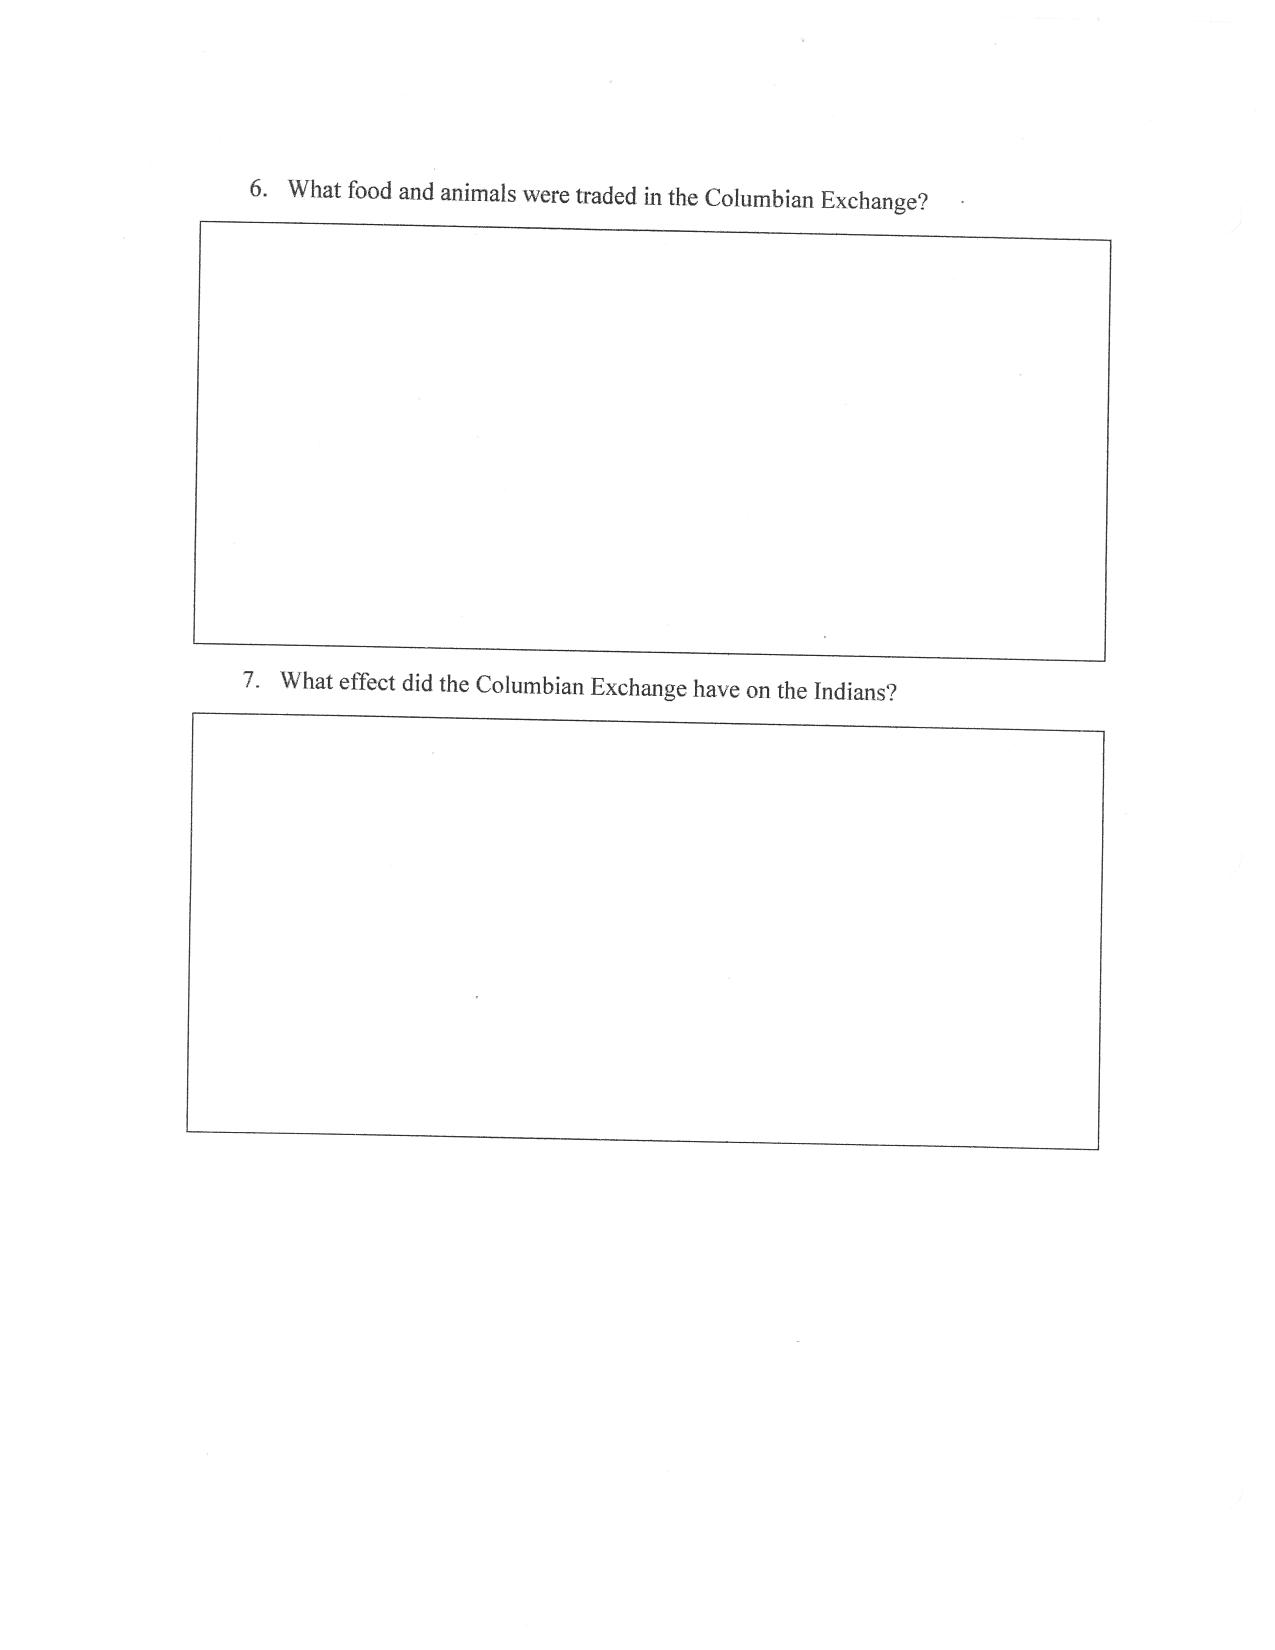 reference ms kasper s social studies class stations i can summarize the perspectives of indigenous africans and europeans during the age of exploration worksheets are found on the links page